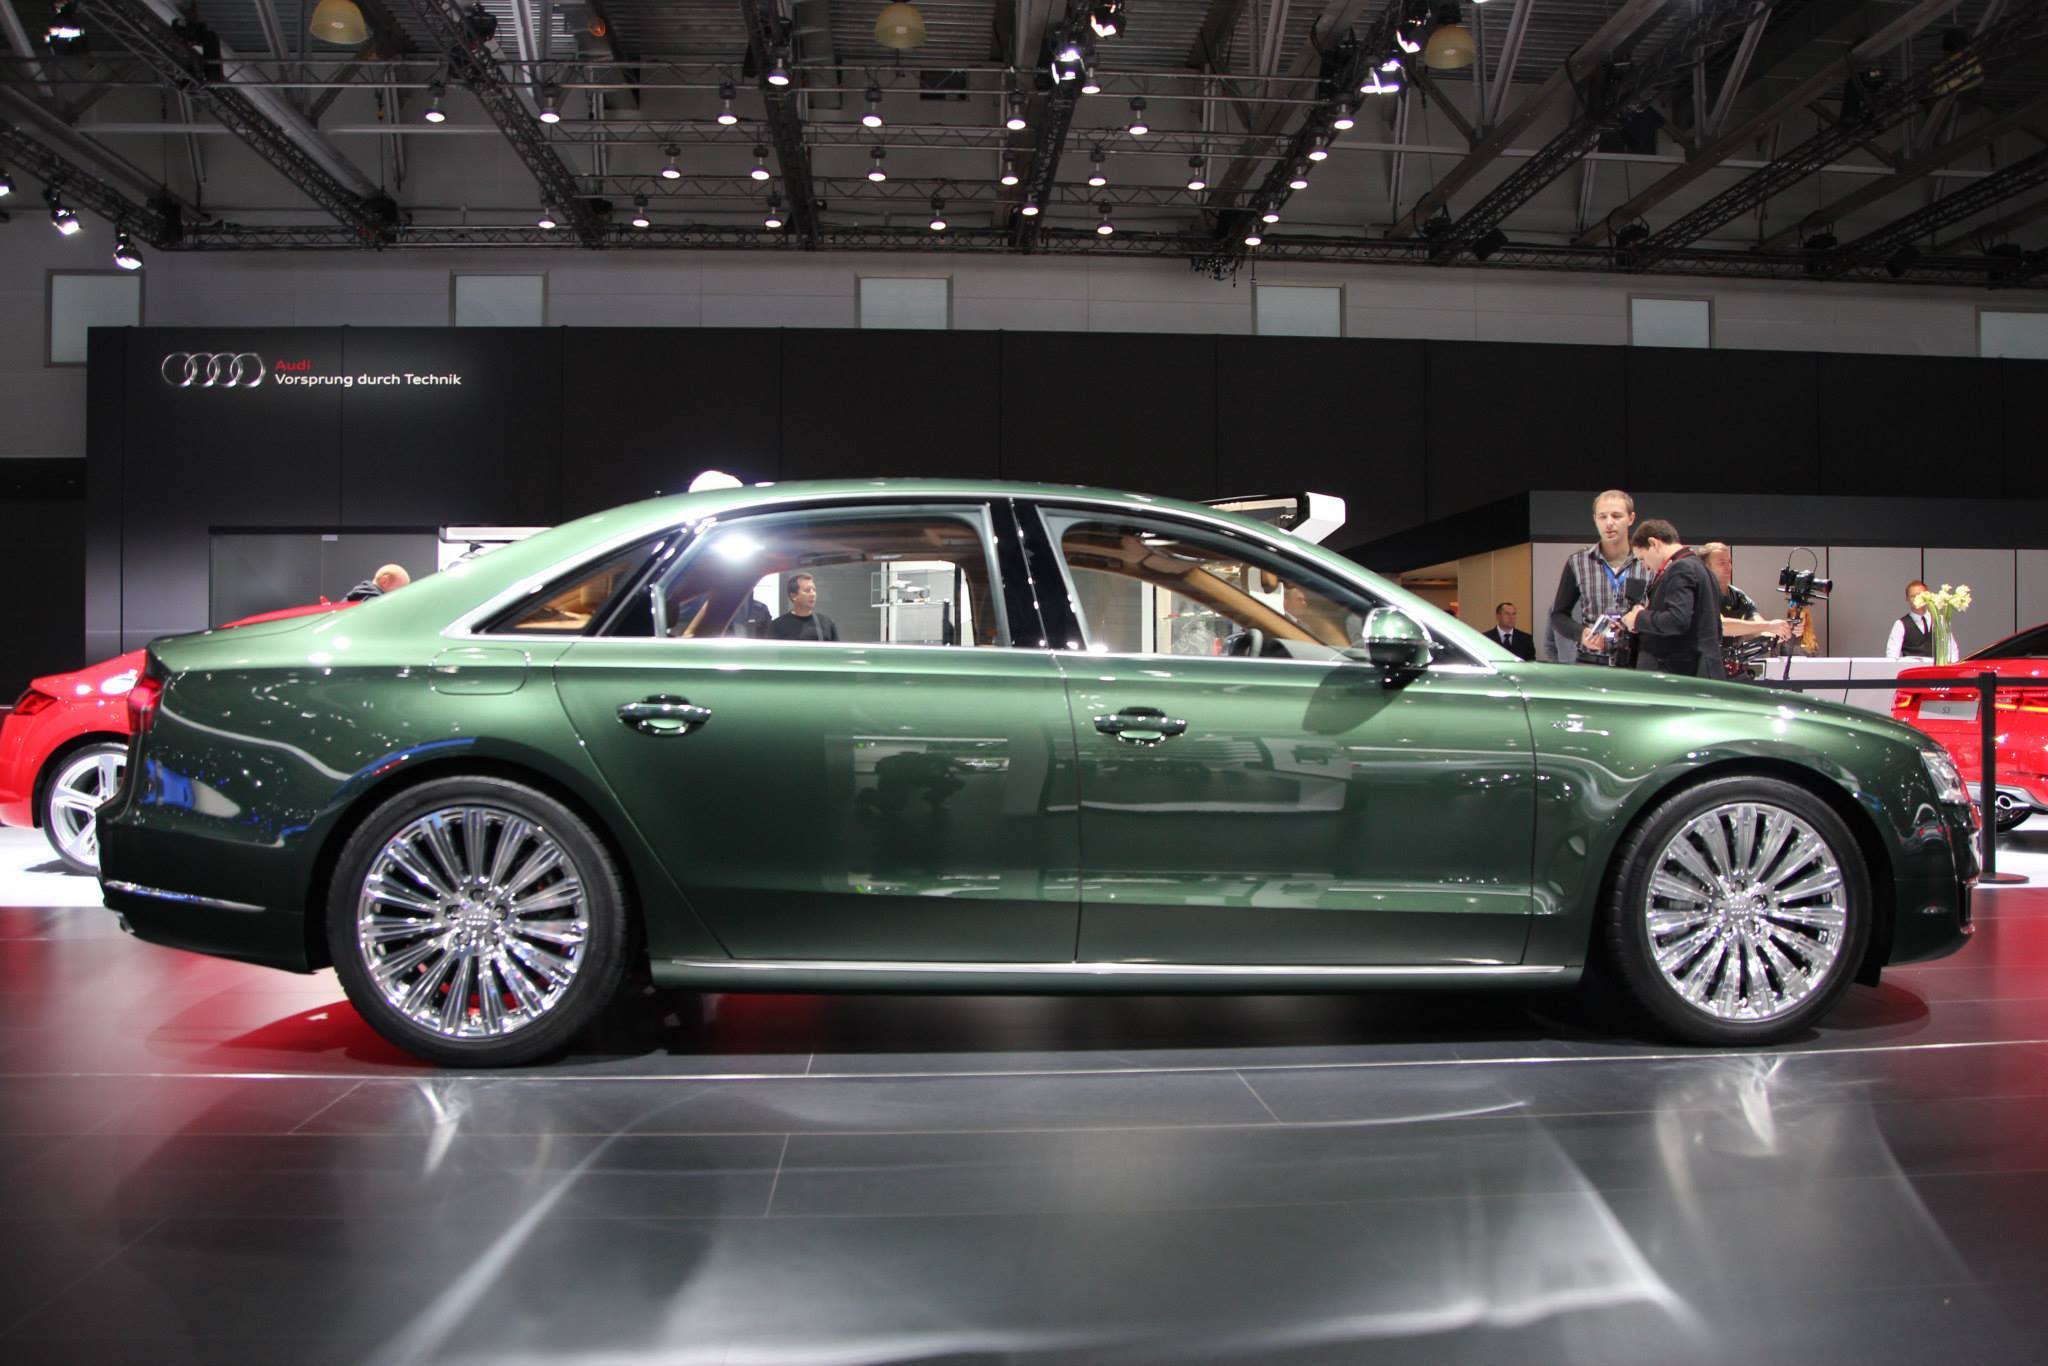 Audi A8L W12 in Verdant Green Pearl Has Jaguar Looks - autoevolution